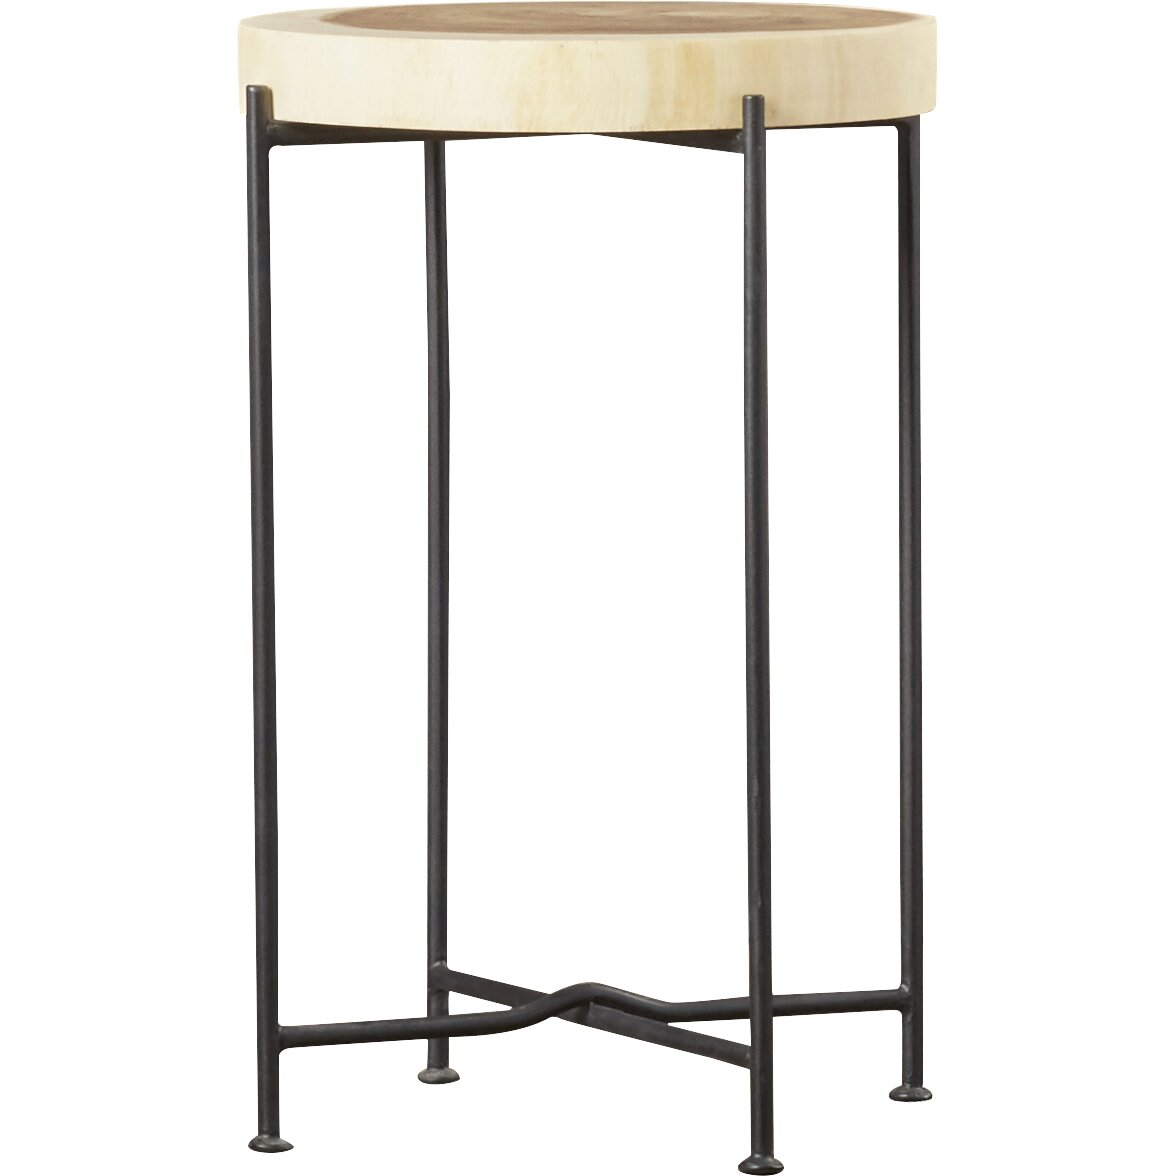 Mercury row phoenicis end table wayfair for Html table row